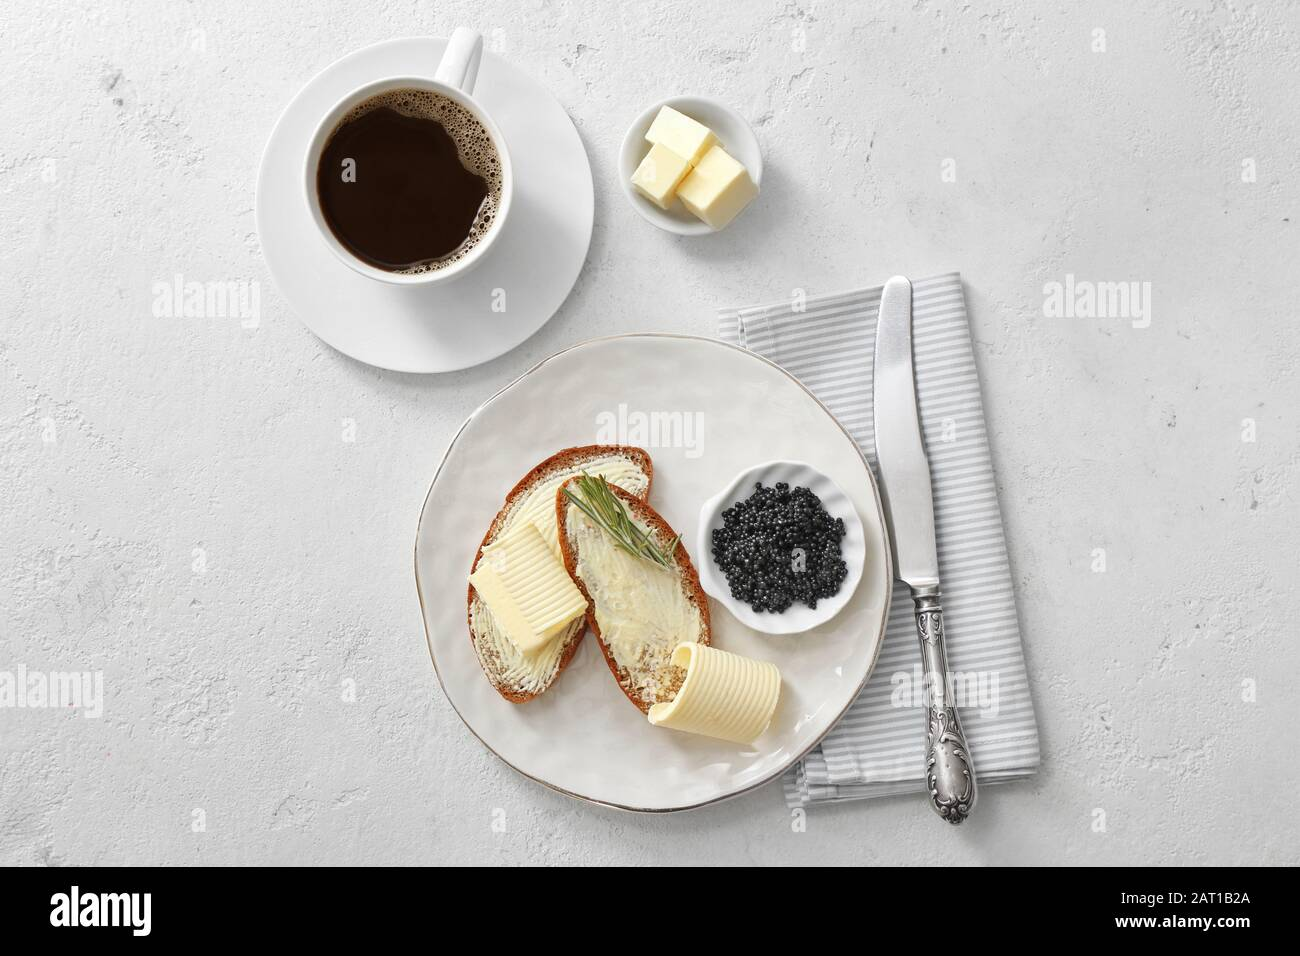 Tasty Breakfast With Fresh Bread Butter Black Caviar And Cup Of Coffee On White Background Stock Photo Alamy